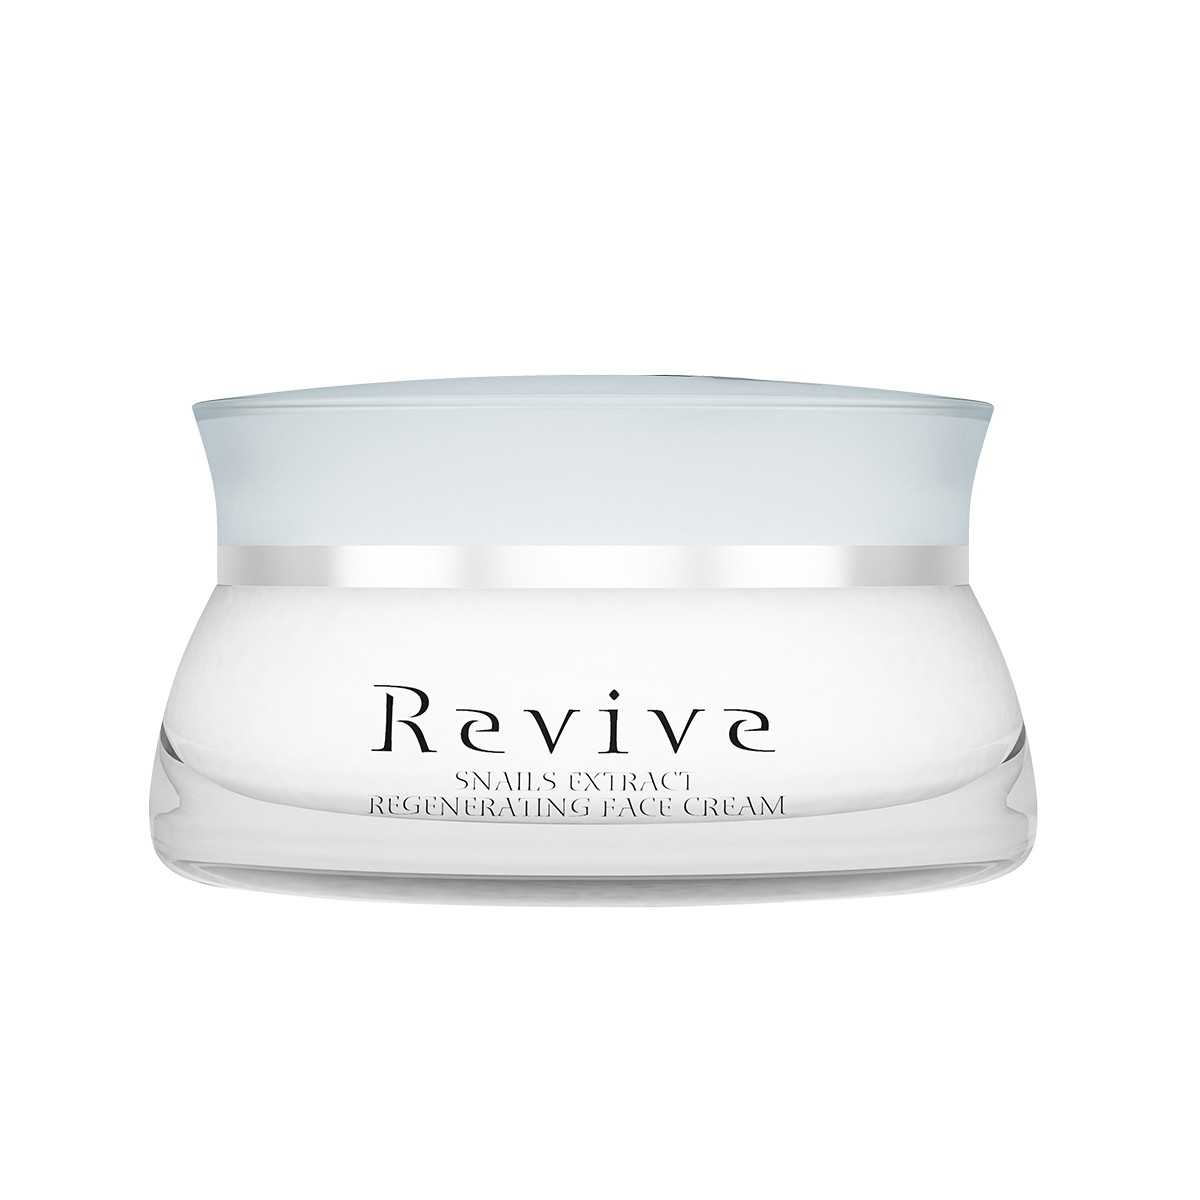 Regenerating face cream with a 100% snail extract and a delicate French aroma Revive